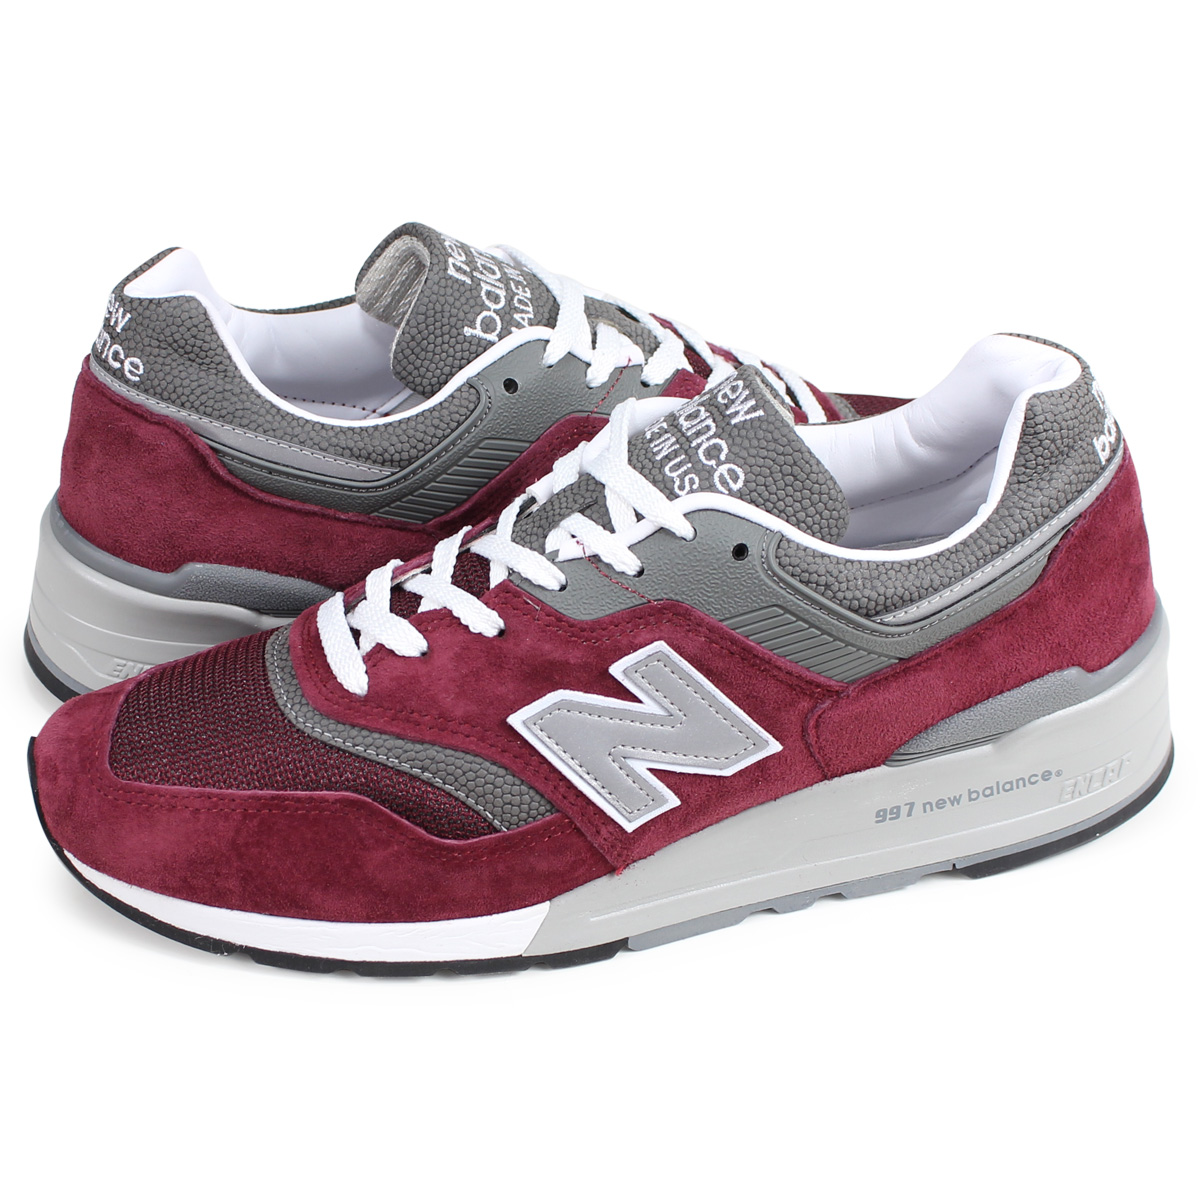 uk availability e368c 426ff new balance M997BR New Balance 997 sneakers men D Wise MADE IN USA bar  Gandhi ...